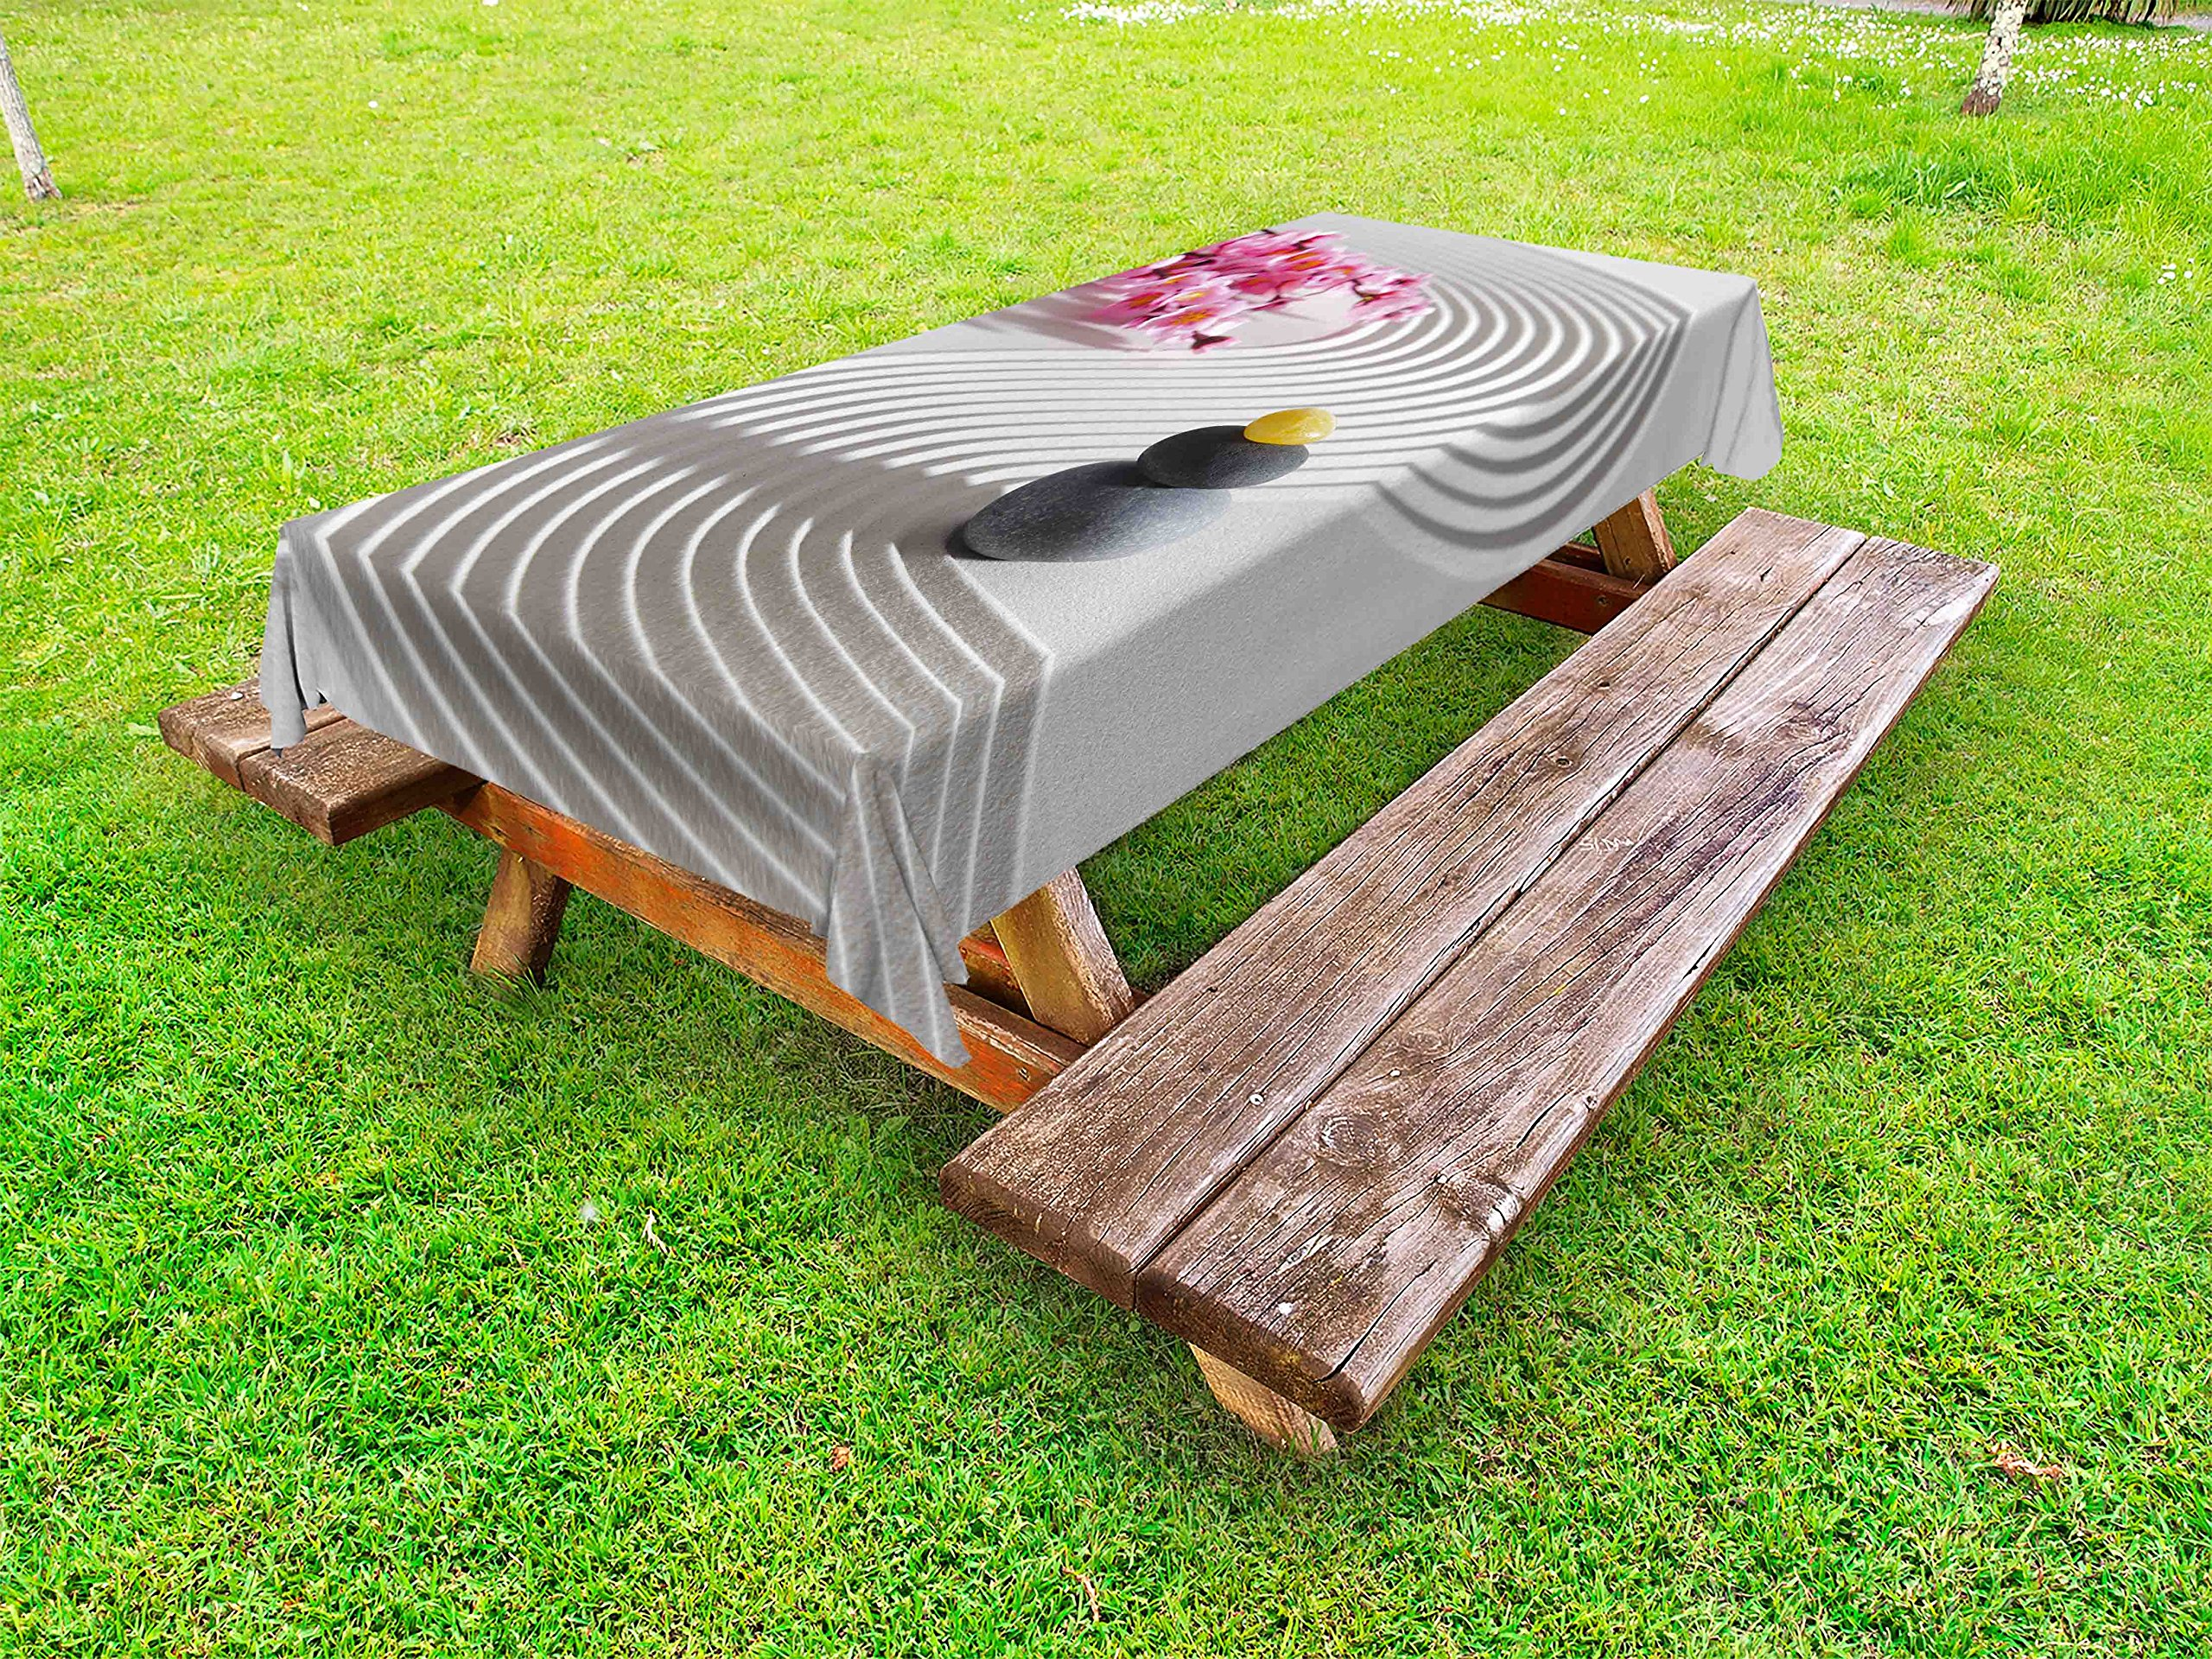 Lunarable Spa Outdoor Tablecloth, Japanese Zen Stones of Meditation Sand with Orchids Relax Yoga Spirit Picture, Decorative Washable Picnic Table Cloth, 58 X 104 inches, Pearl Pink Dimgrey